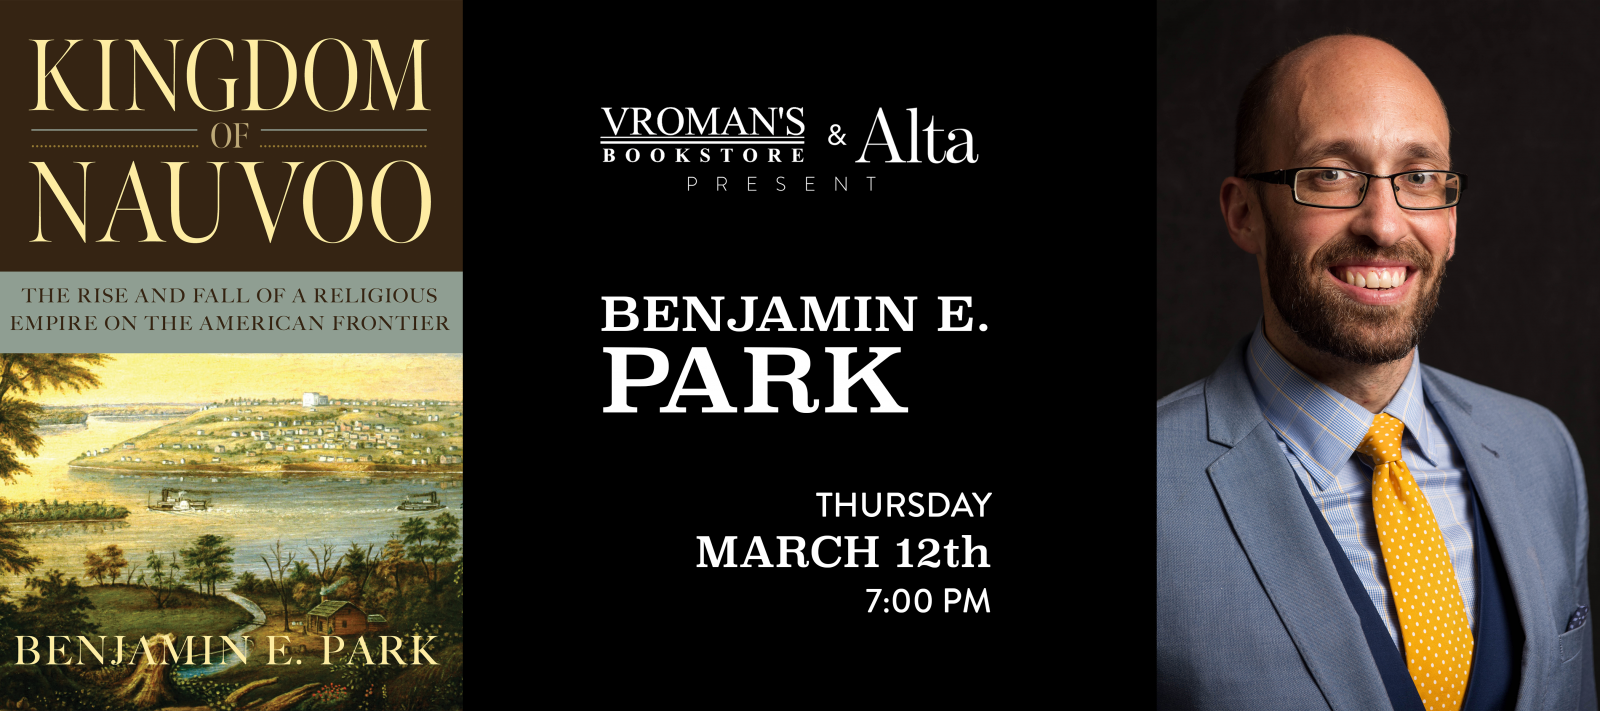 Benjamin E. Park book signing on Thursday, March 12, at 7pm